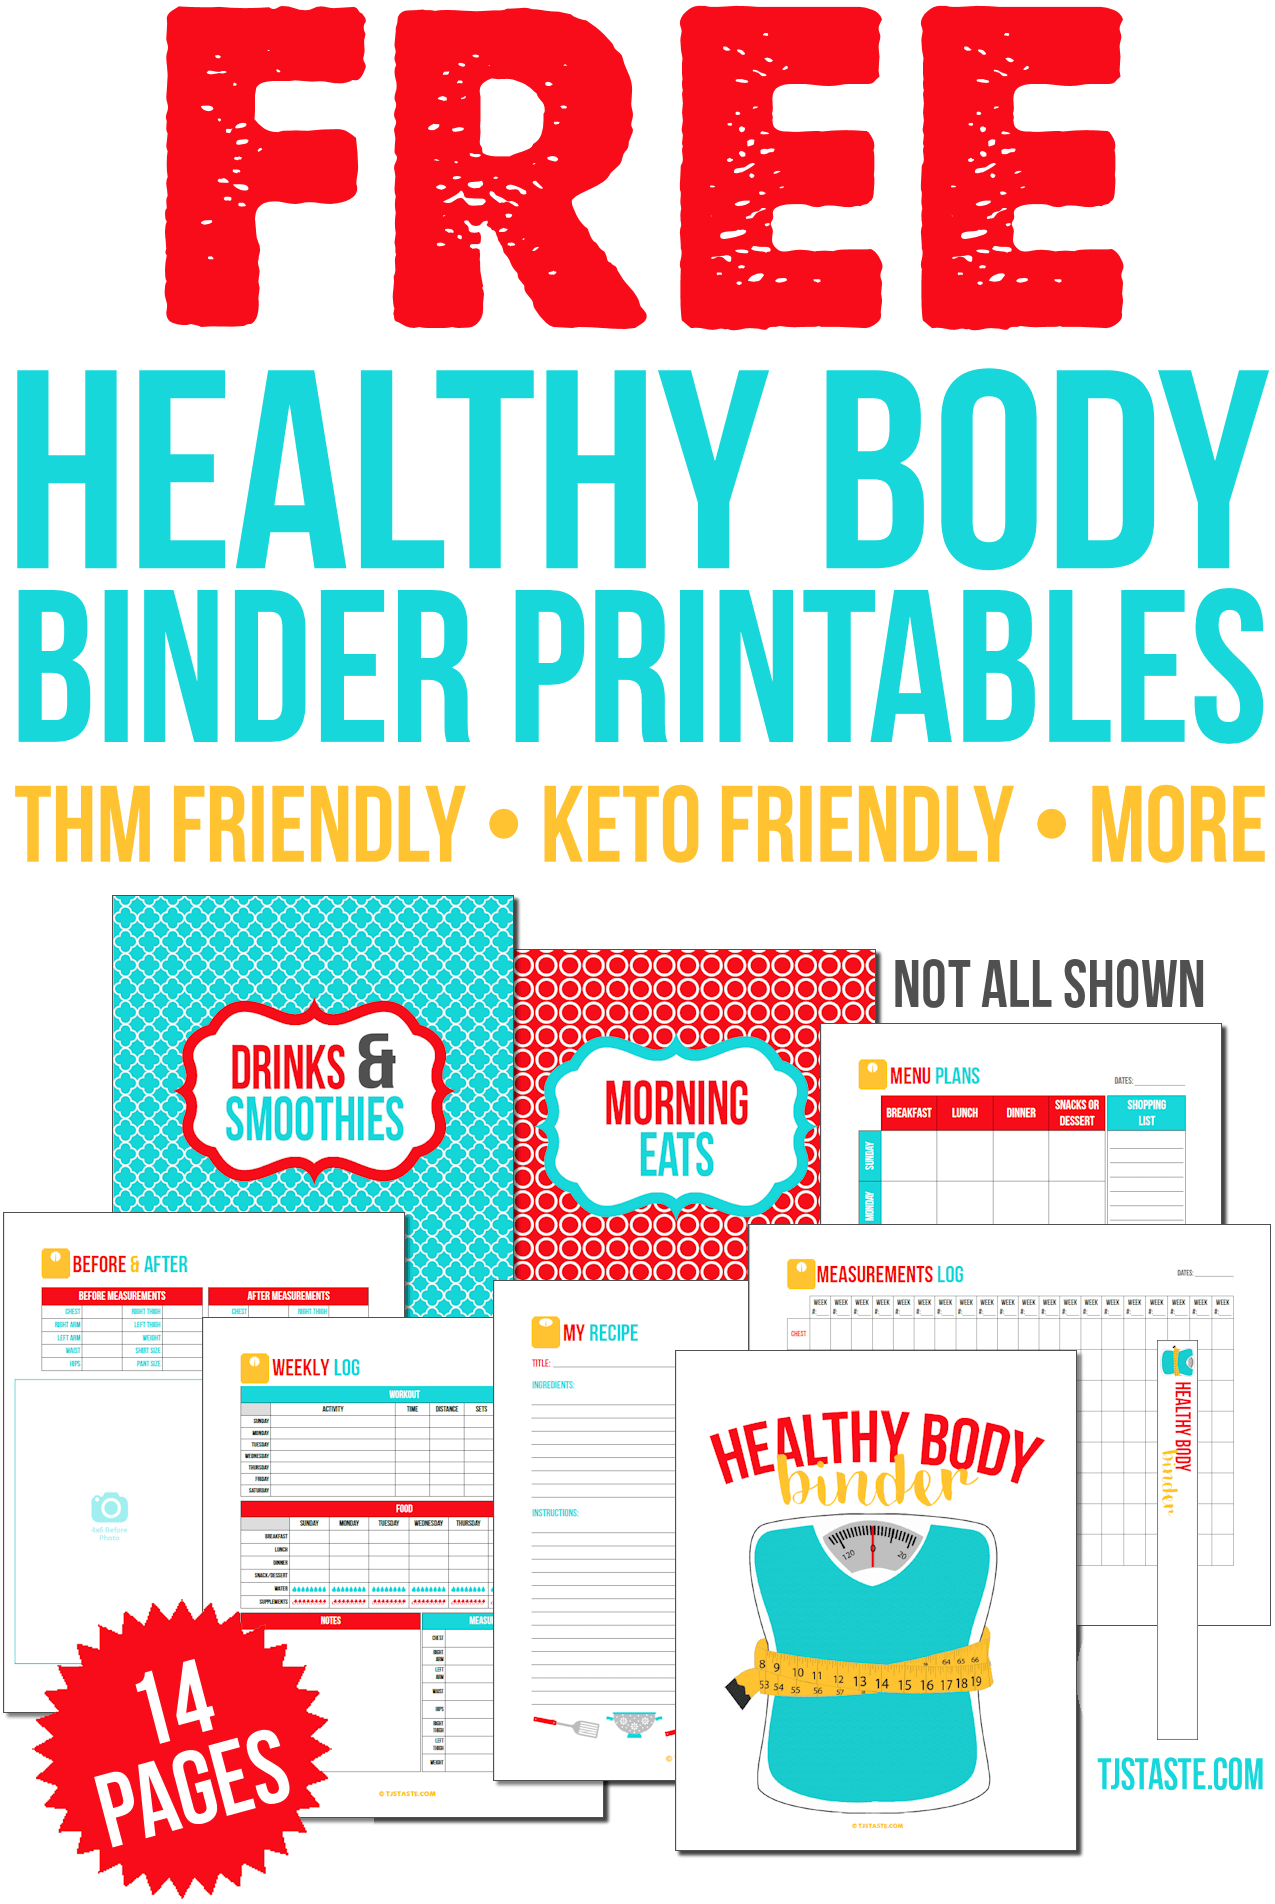 THM, Keto, etc. Healthy Body Binder Printables